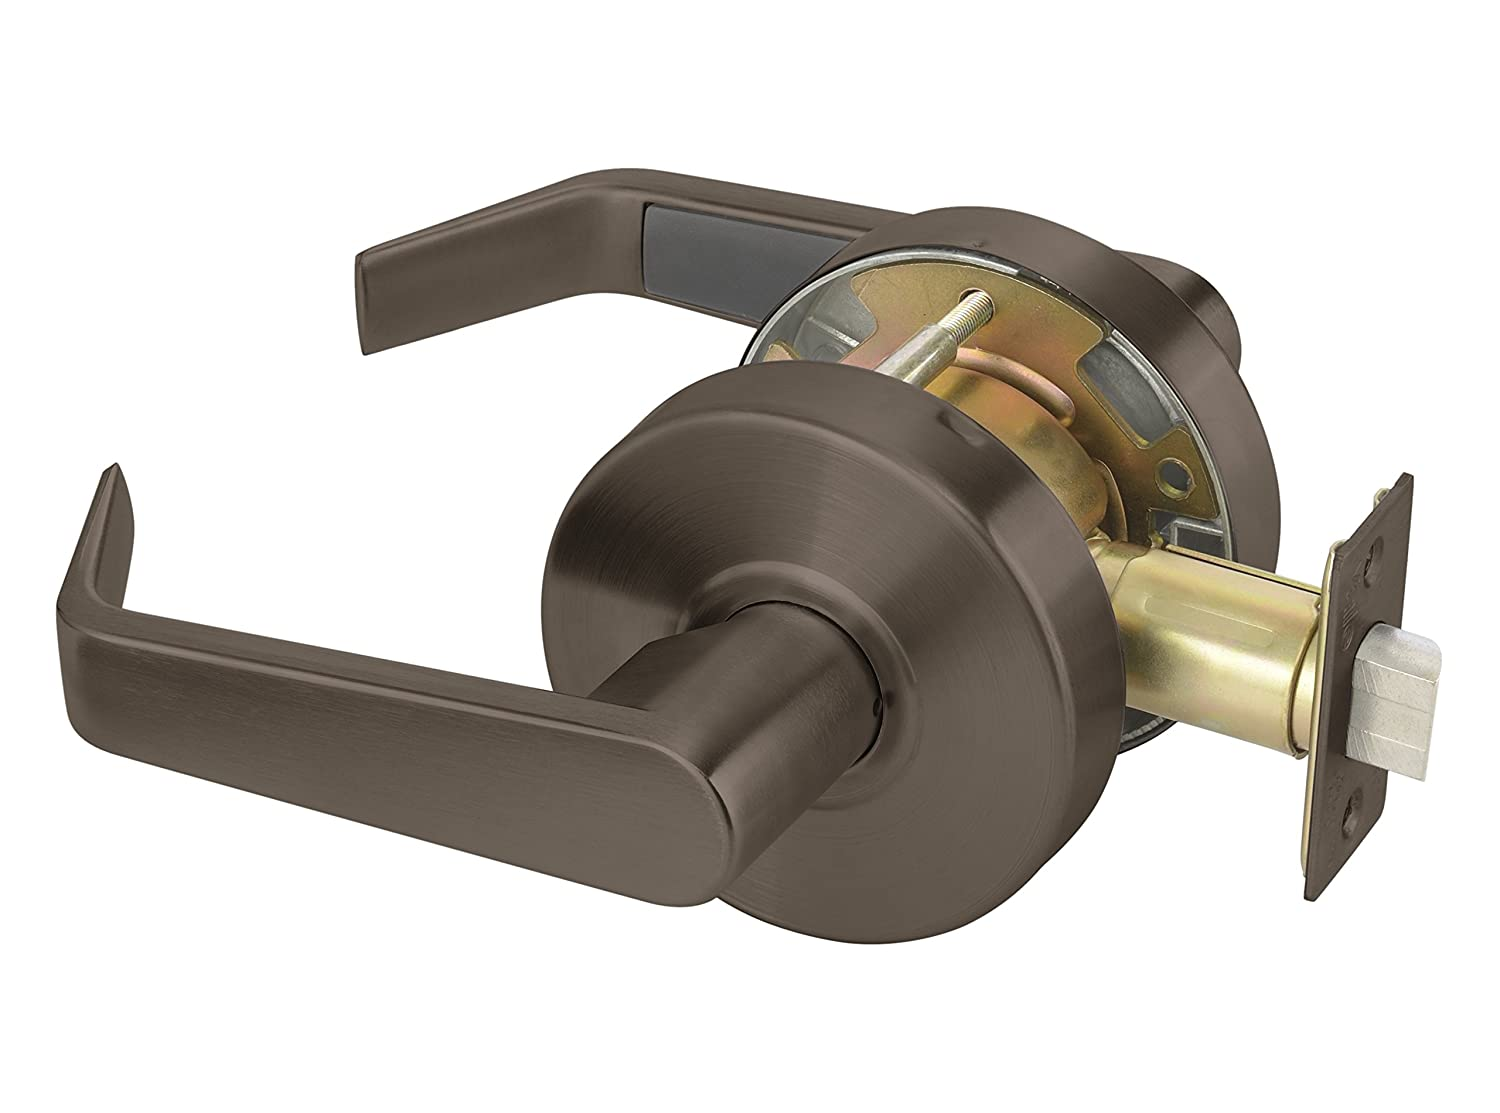 Schlage ND Series Commercial Cylindrical lock Lever ND60RD RHO 626 ND60RDRHO626 Rhodes US26D Satin Chromium Plated Vestibule//Classroom Full Size Conventional Interchangeable Core Installed and 2 Keys